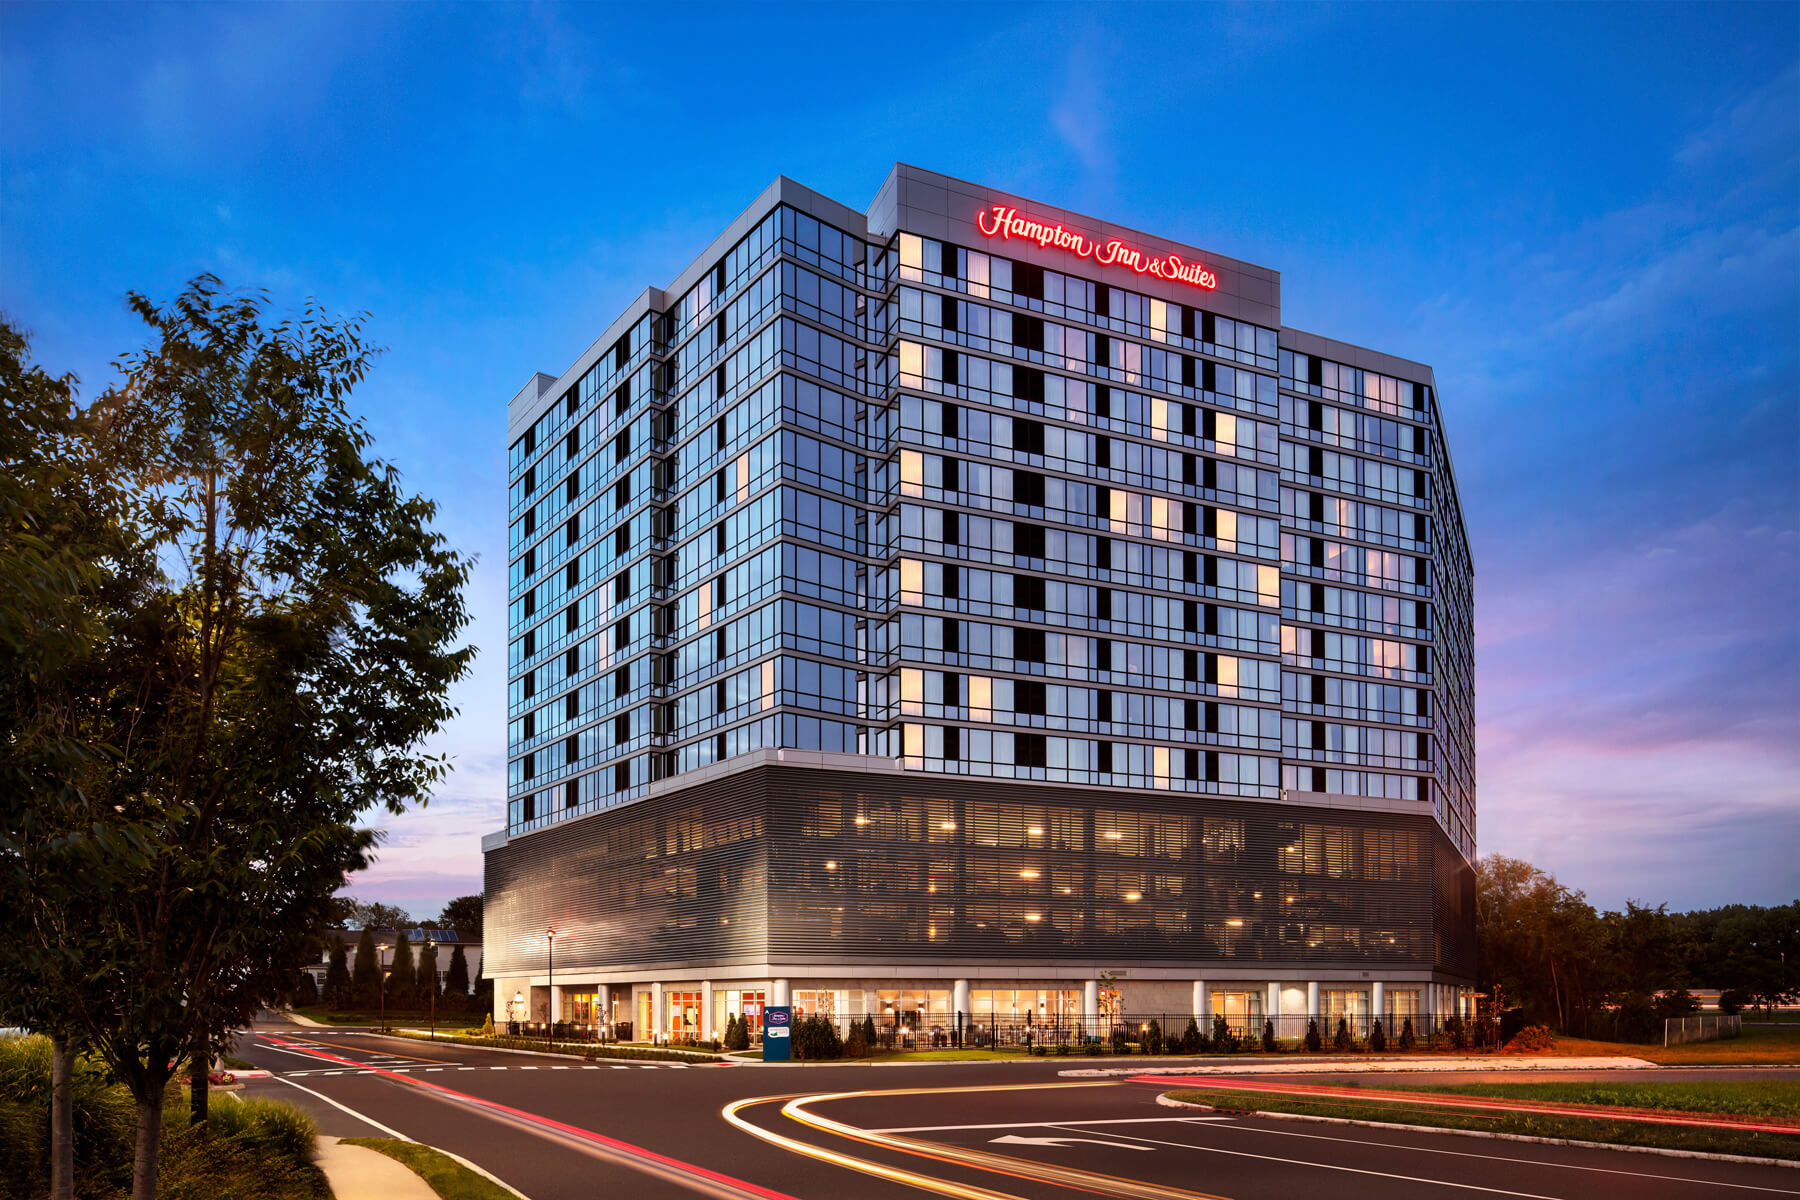 Hampton Inn & Suites / Homwood Suites by Hilton Dual Brand Hotel